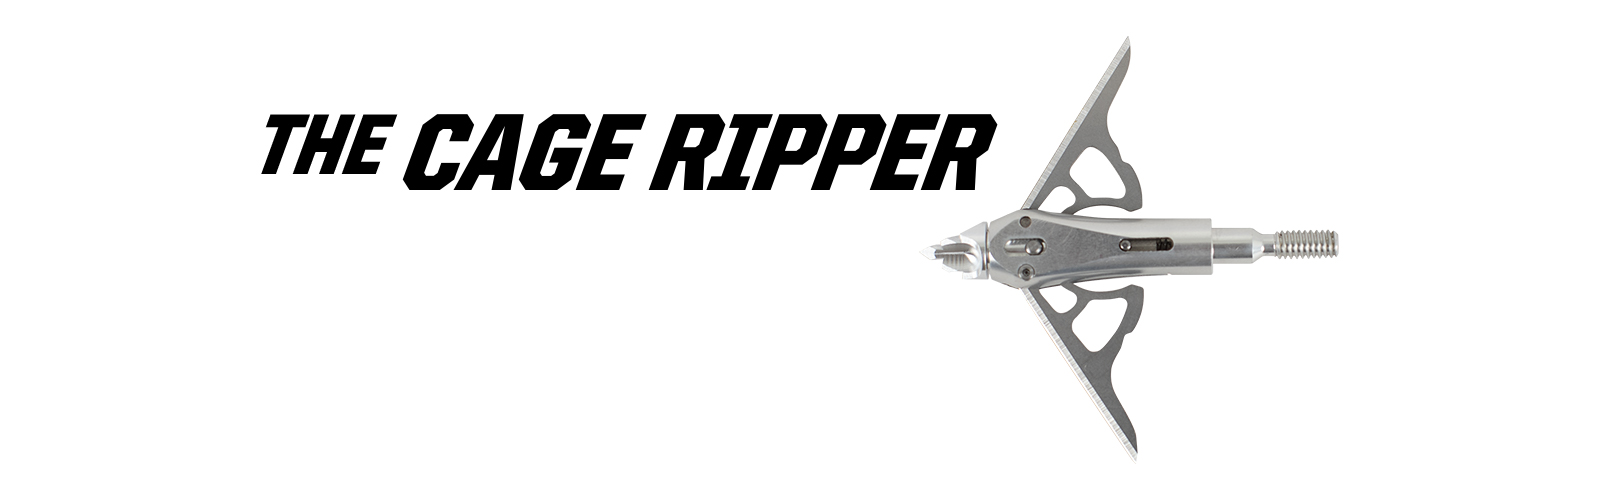 Ramcat Cage Ripper Broadhead Boasts Devastating Design